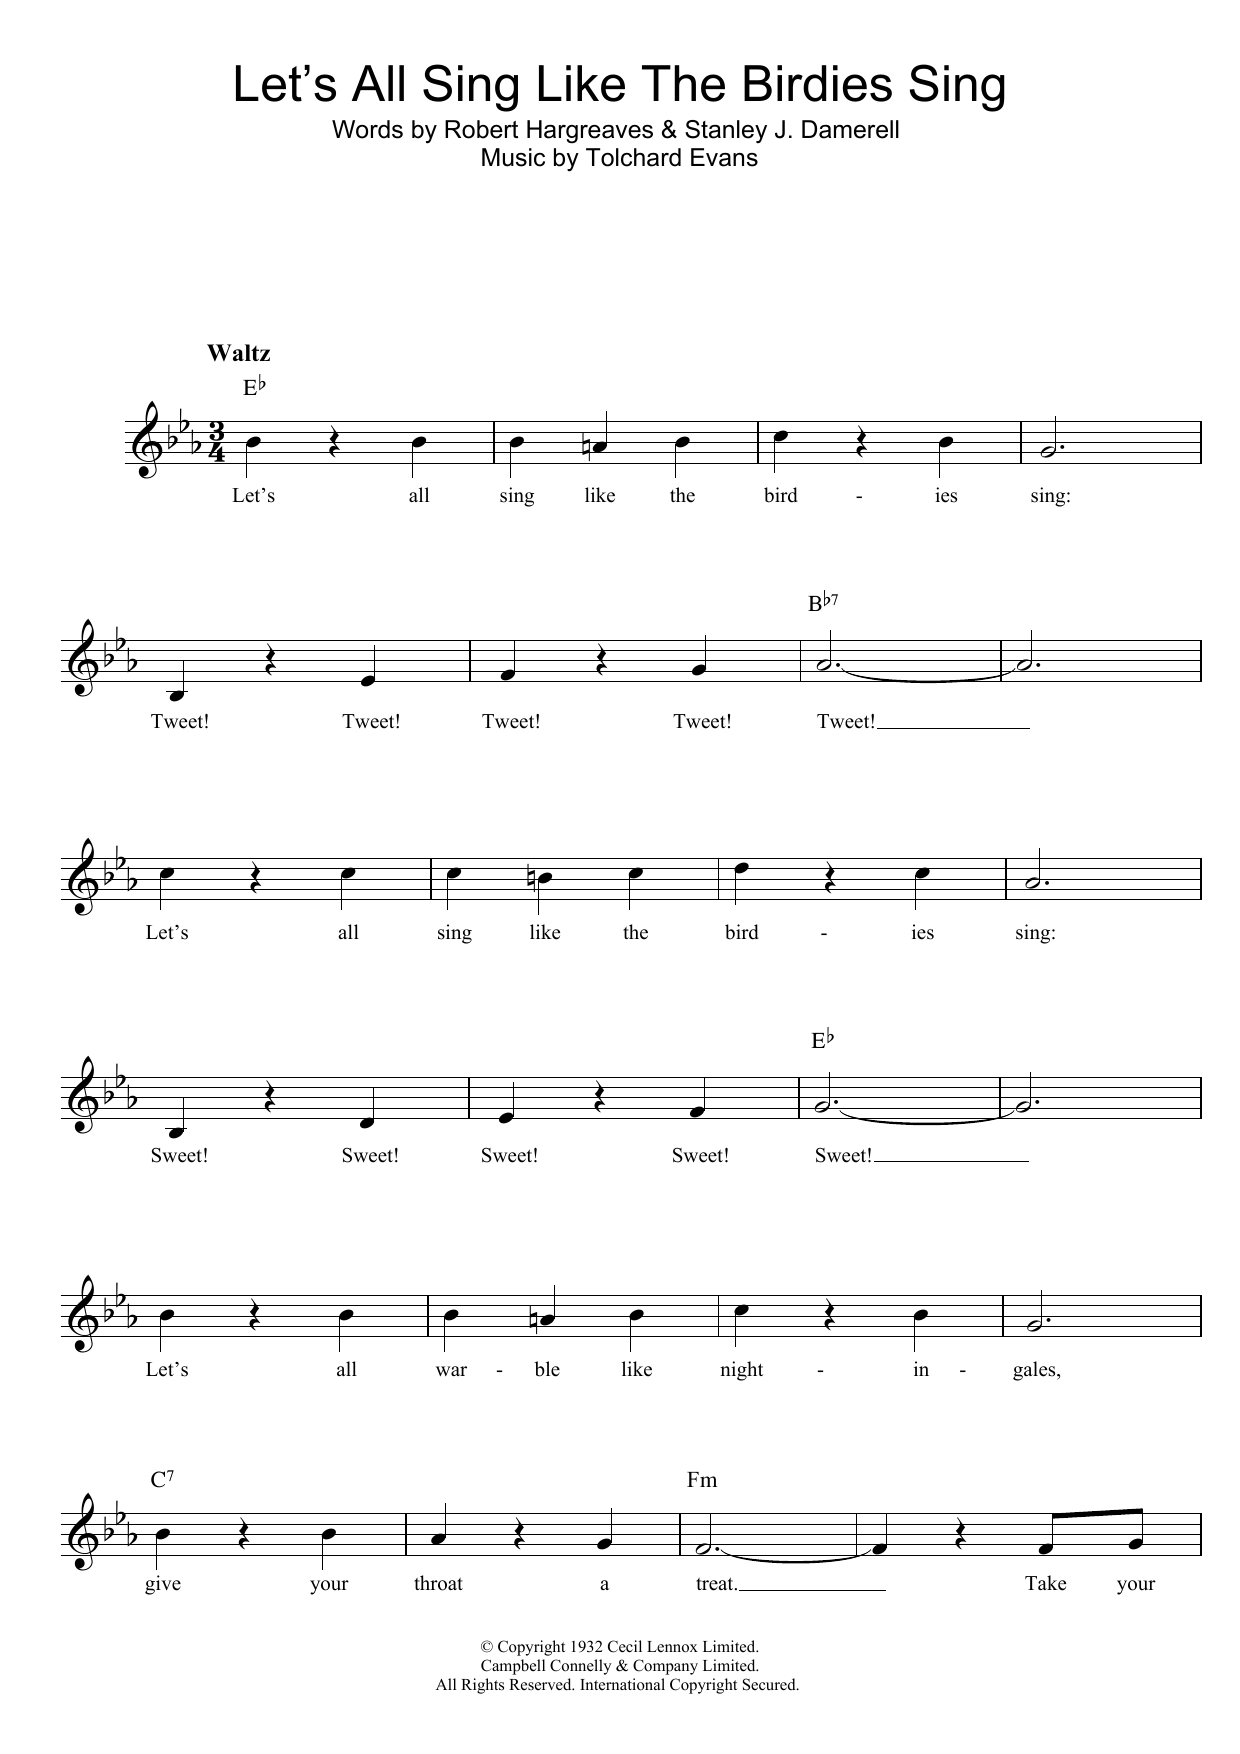 Let's All Sing Like The Birdies Sing Sheet Music